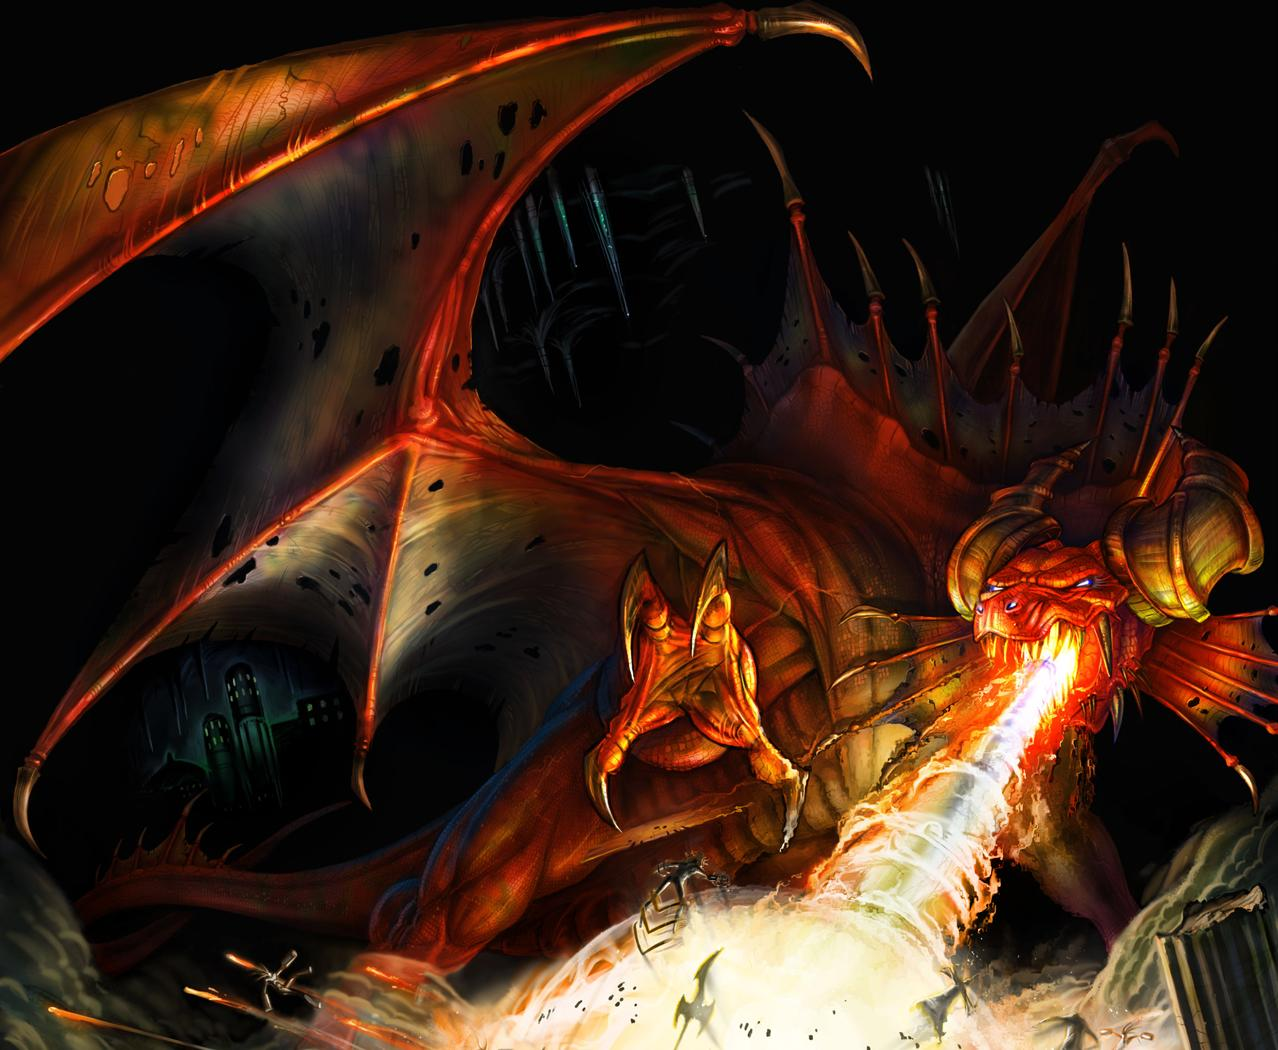 Evil Fire Dragon: Dragon Wallpaper And Background Image